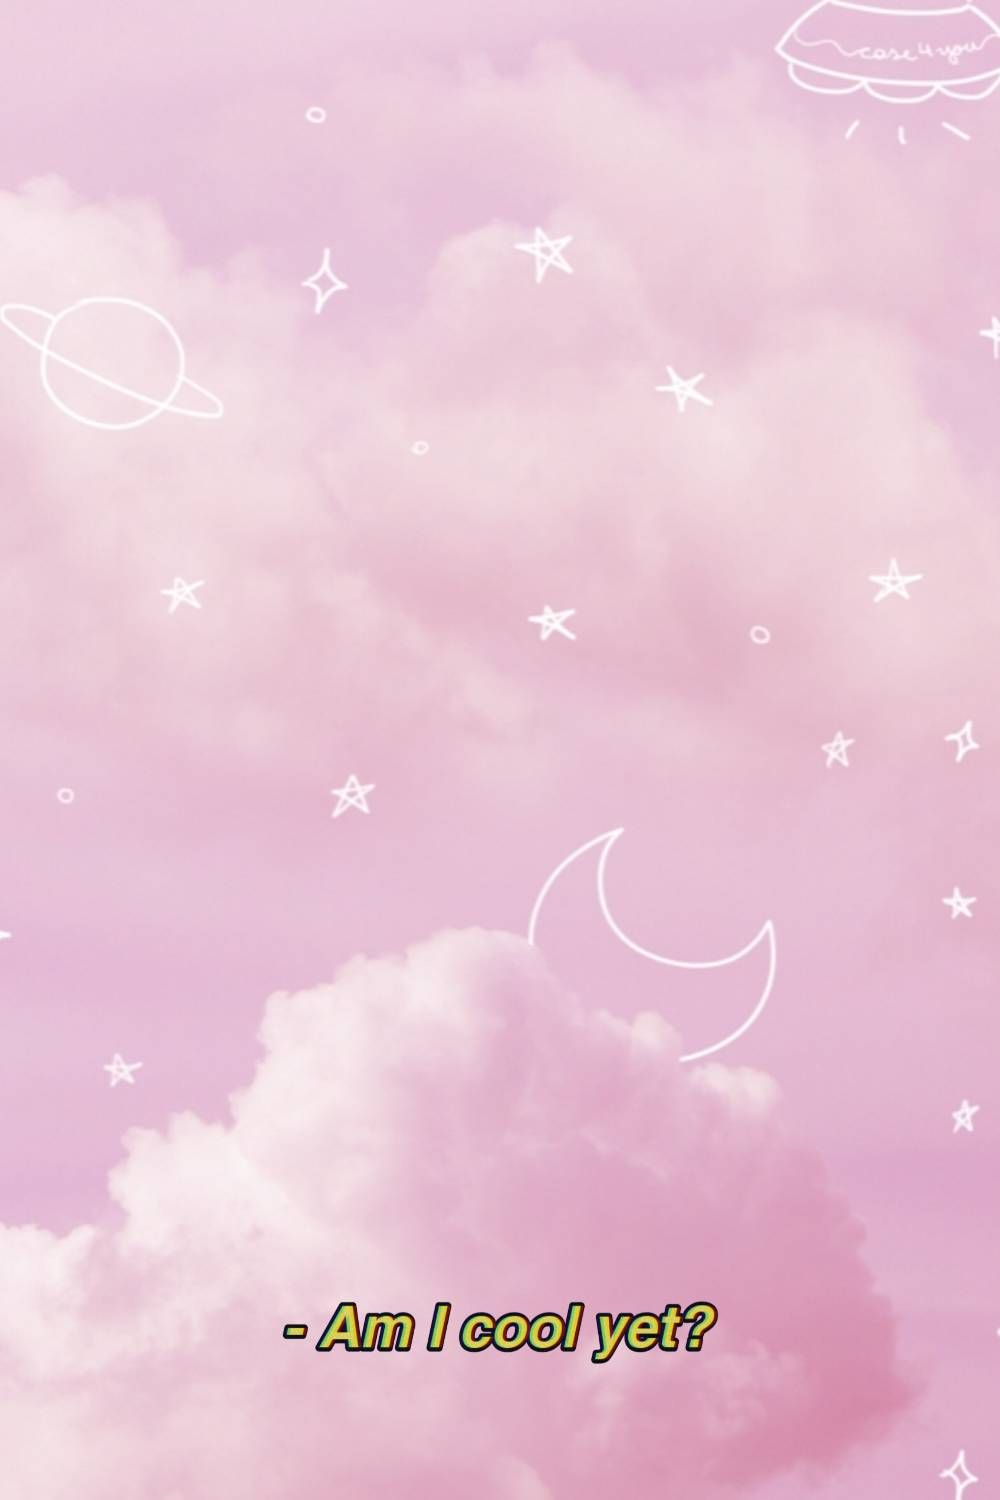 Free Aesthetic Wallpaper In 2021 Pink Clouds Wallpaper Pink Wallpaper Girly Aesthetic Wallpapers Download the perfect aesthetic pictures. free aesthetic wallpaper in 2021 pink